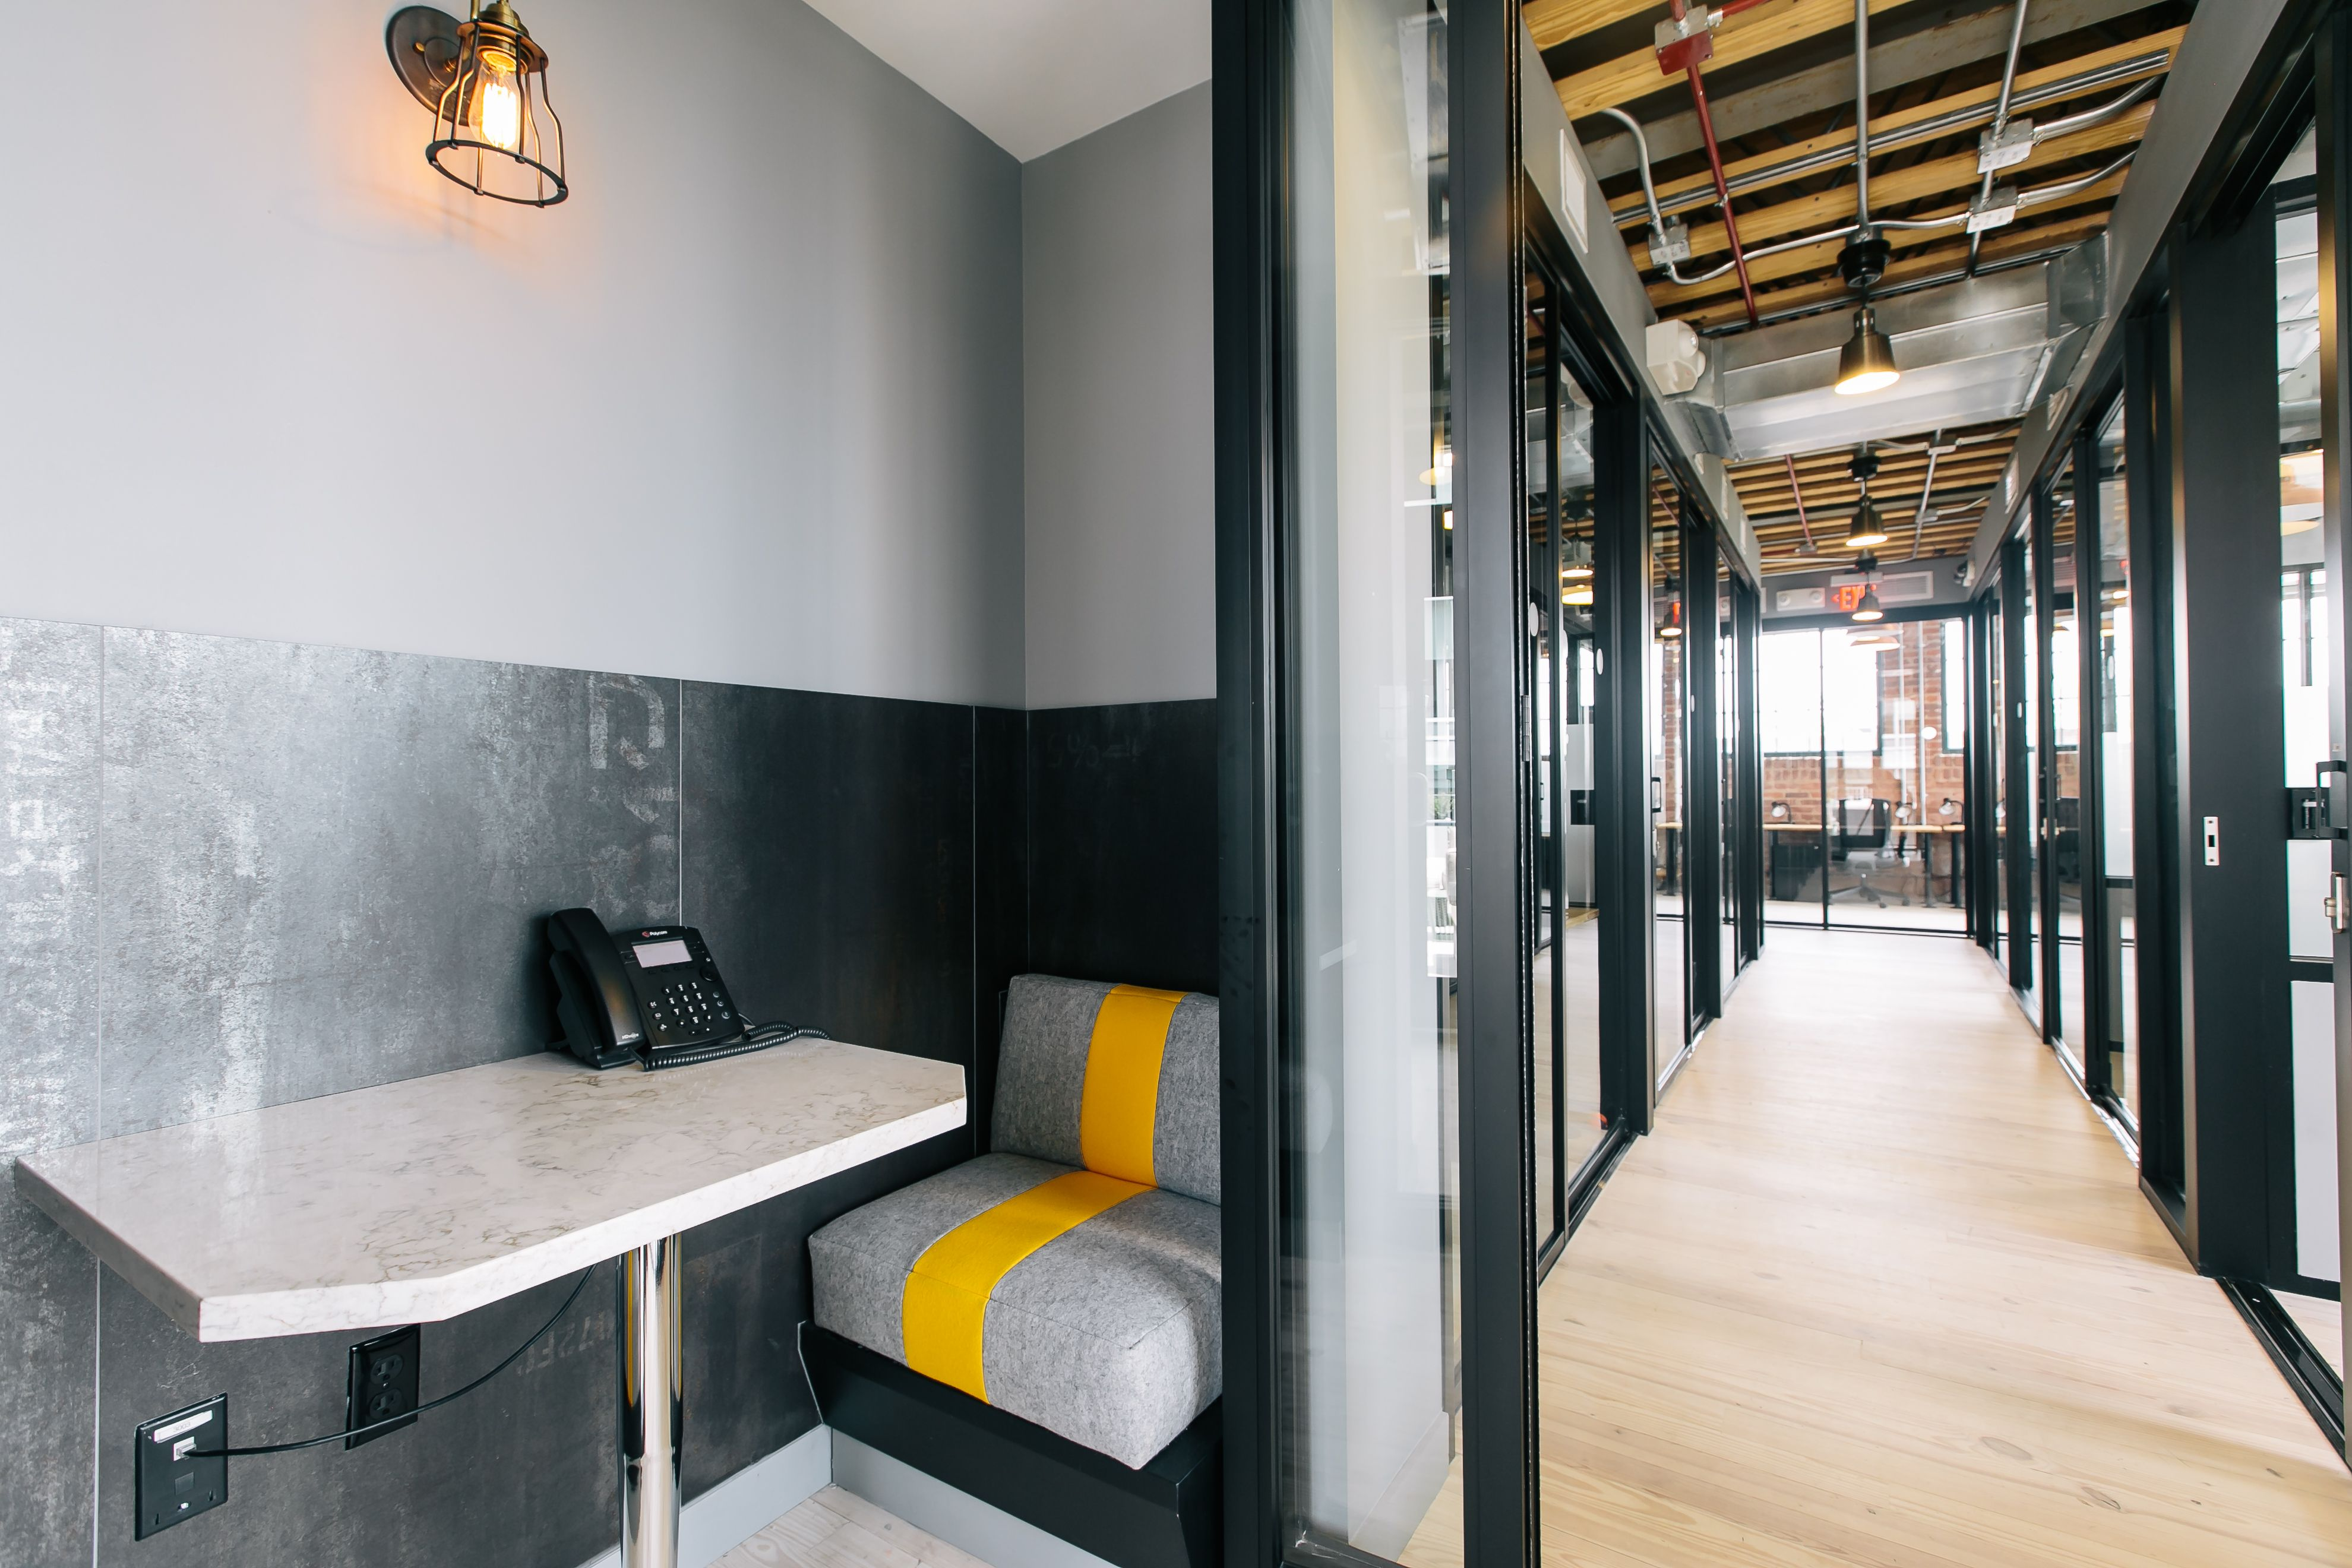 wework wonder bread phone booth imagery office lighting office interiors shared office. Black Bedroom Furniture Sets. Home Design Ideas